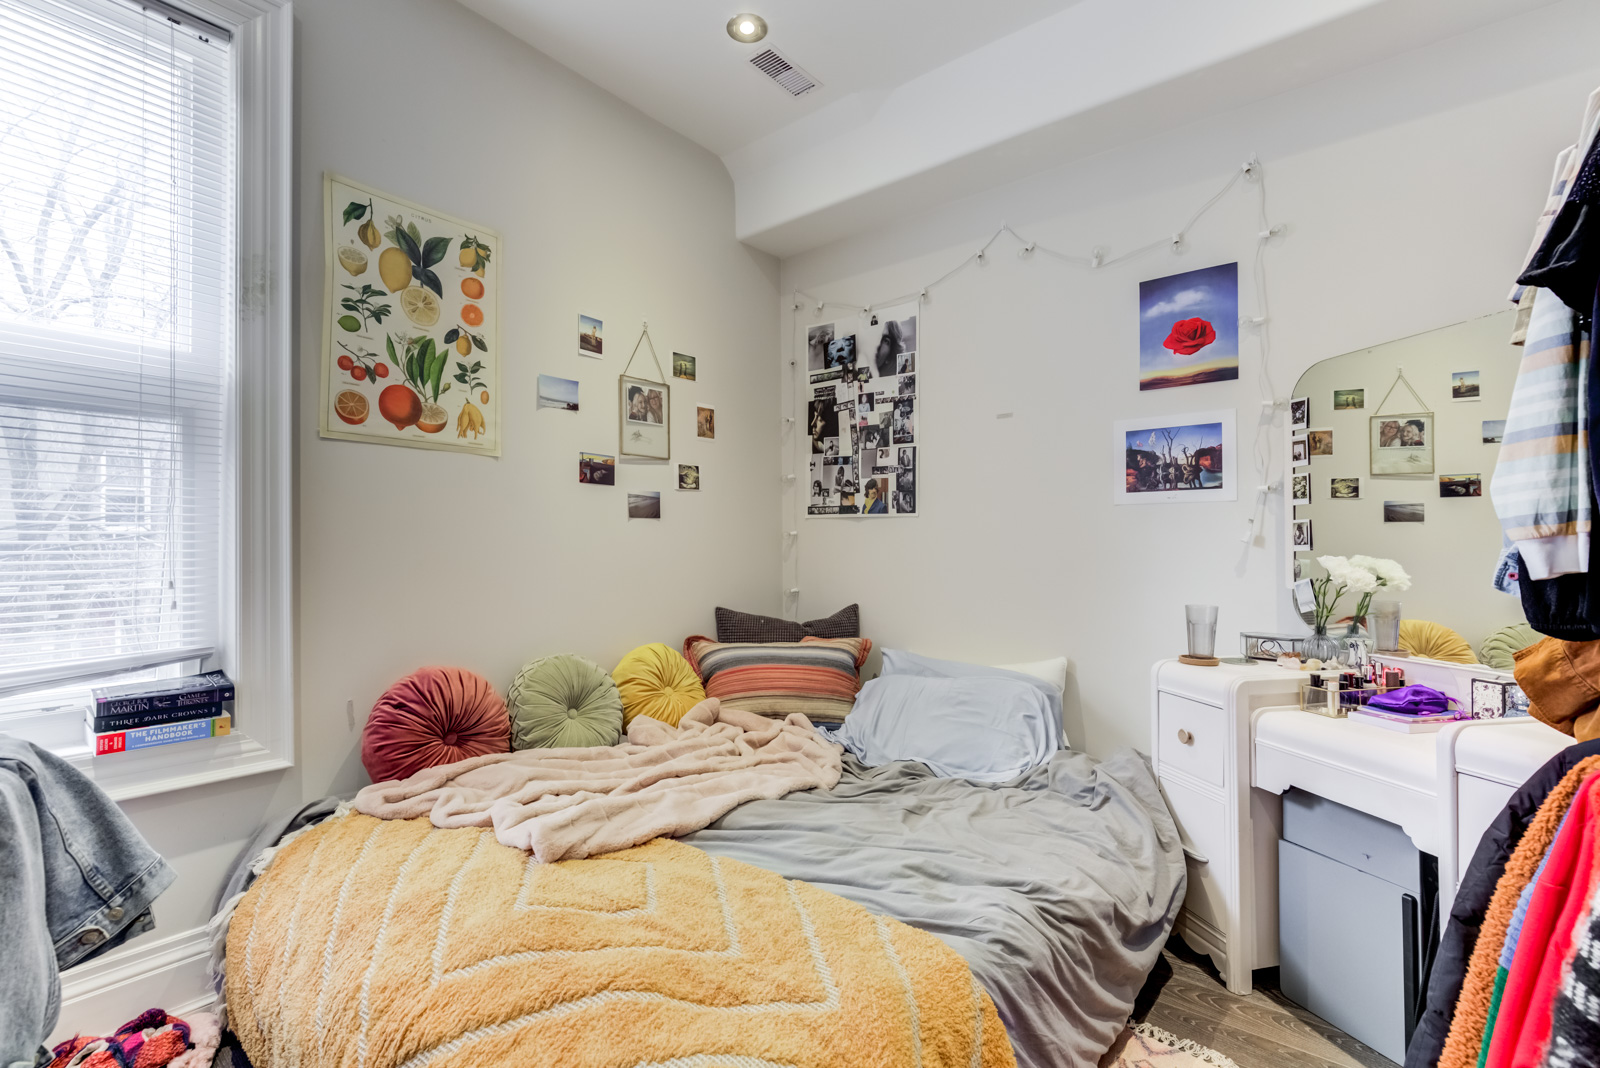 Messy bedroom with bed on floor, colourful sheets and pictures on wall.